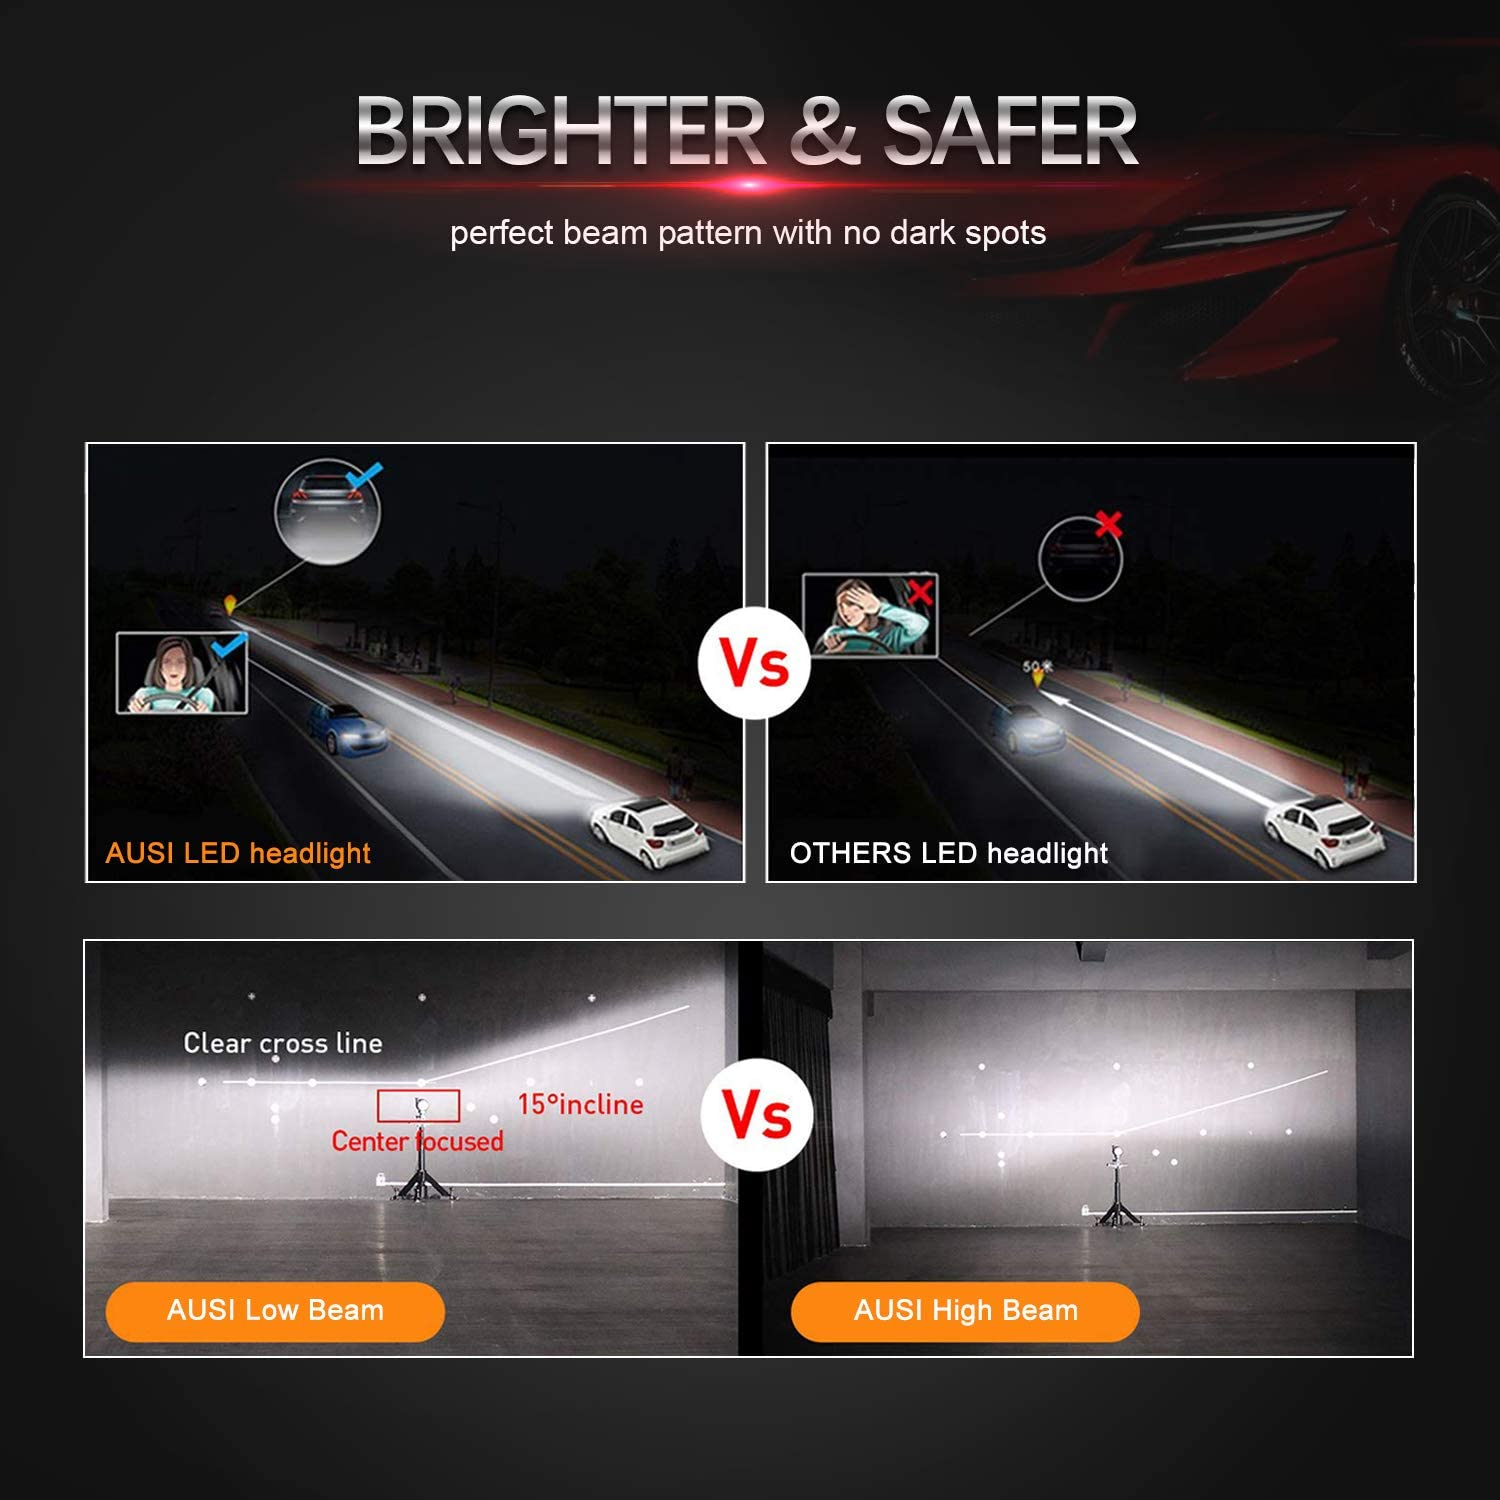 6800LM 6000K Xenon White AUSI 9007 HB5 LED Headlight Bulbs All-in-One Conversion Kit with Mini Fans FA4 Series CSP Chips Low Beam//Fog Light Bulb